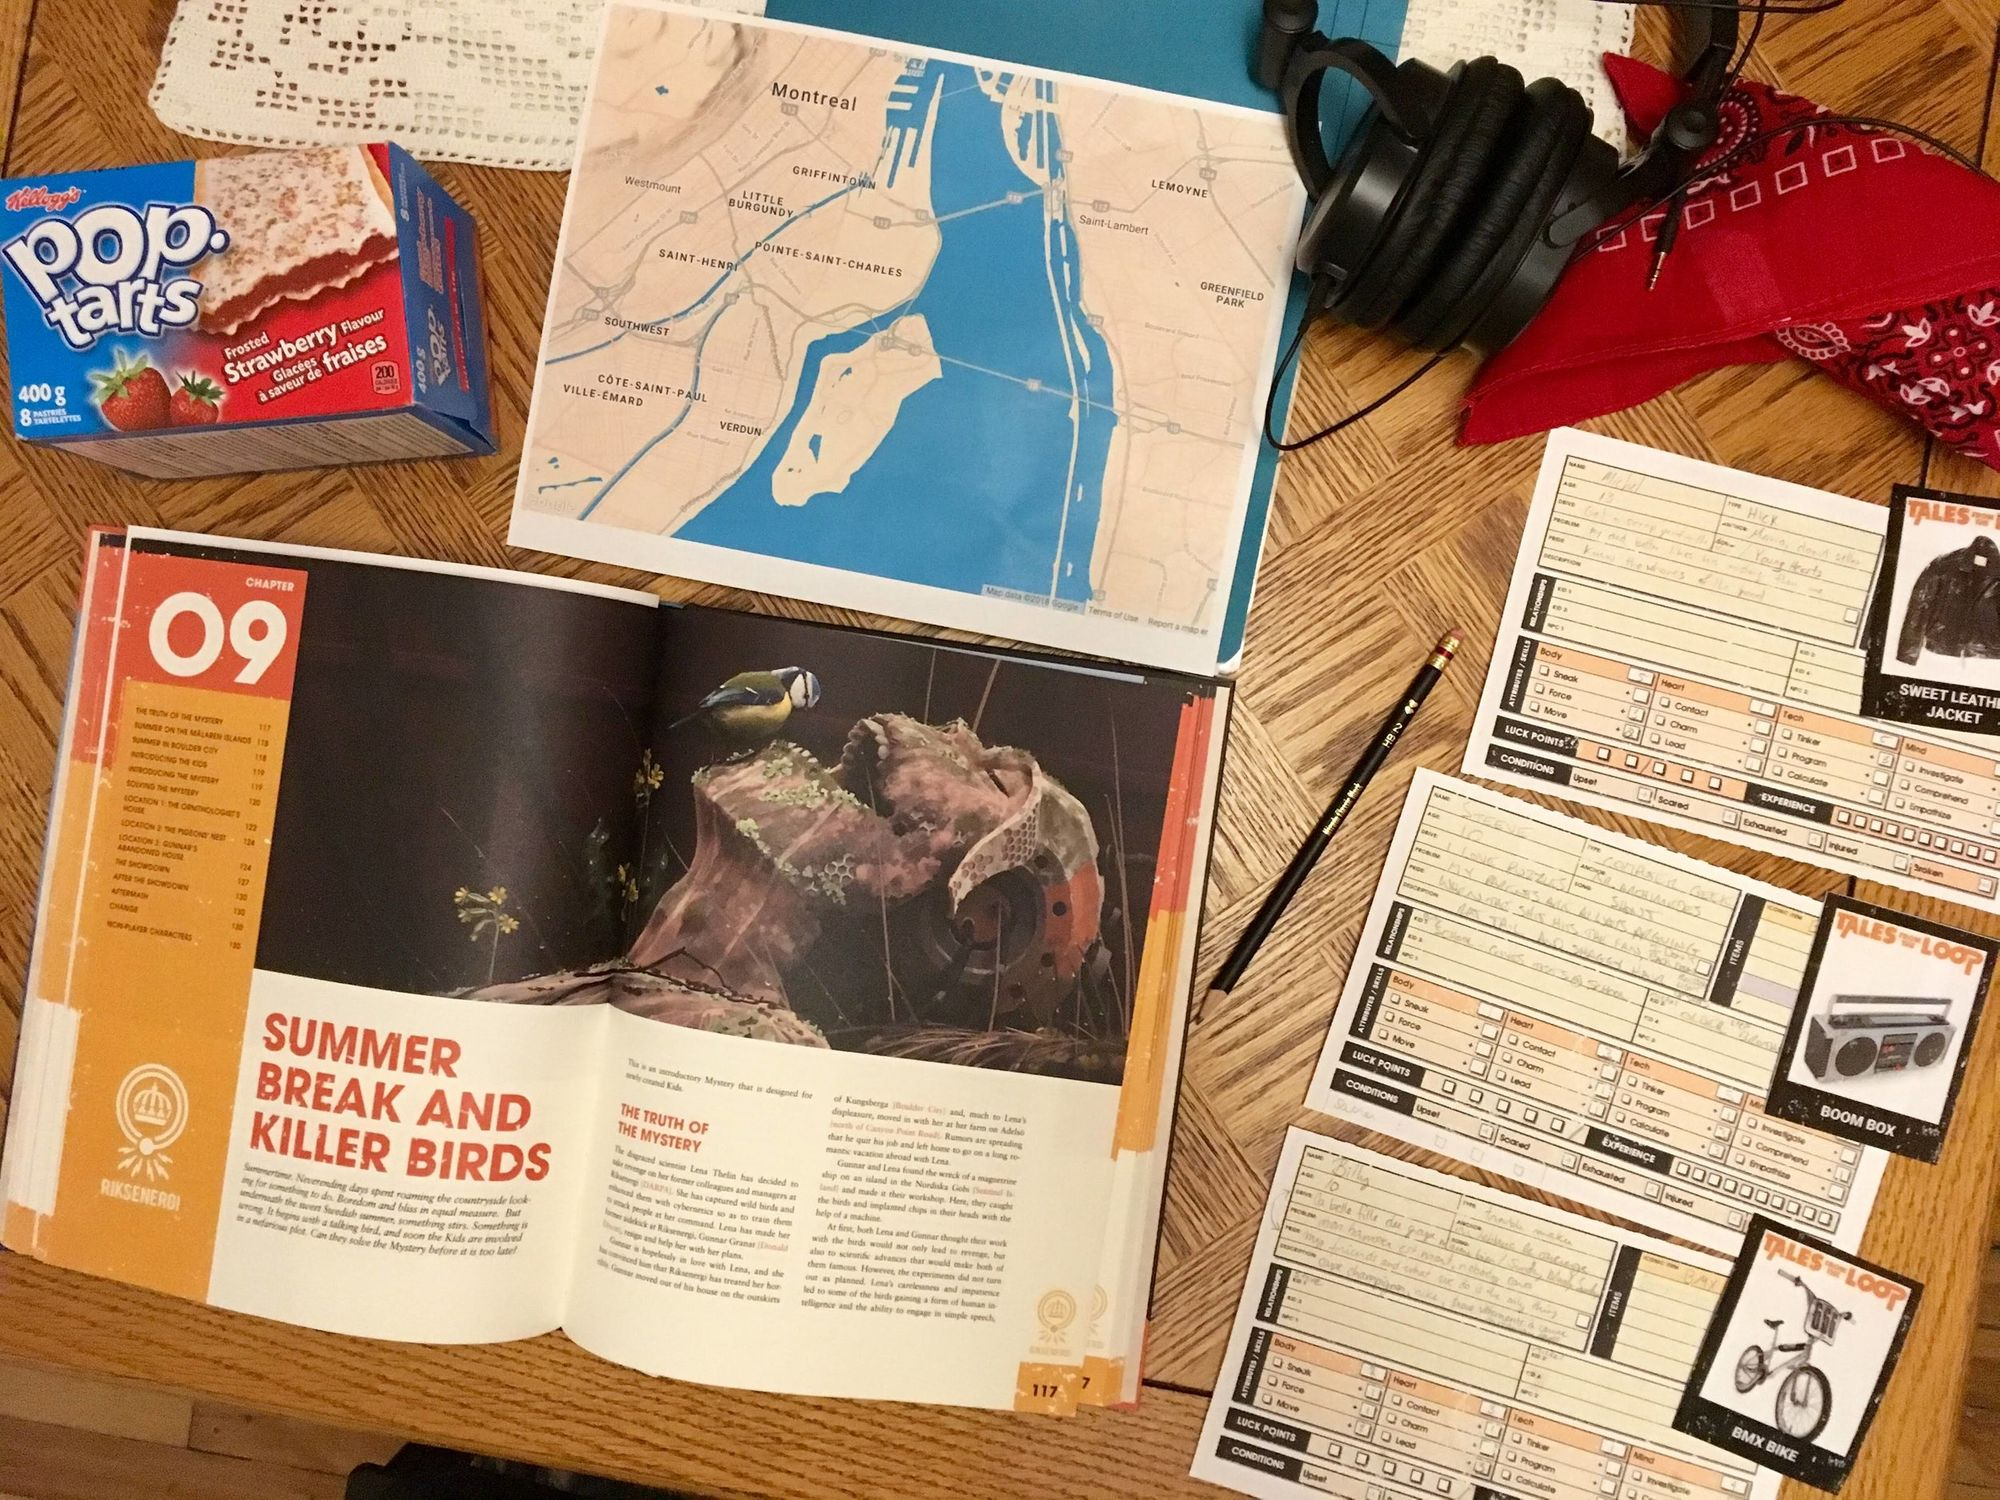 Session 1: Tales from the Montreal Loop